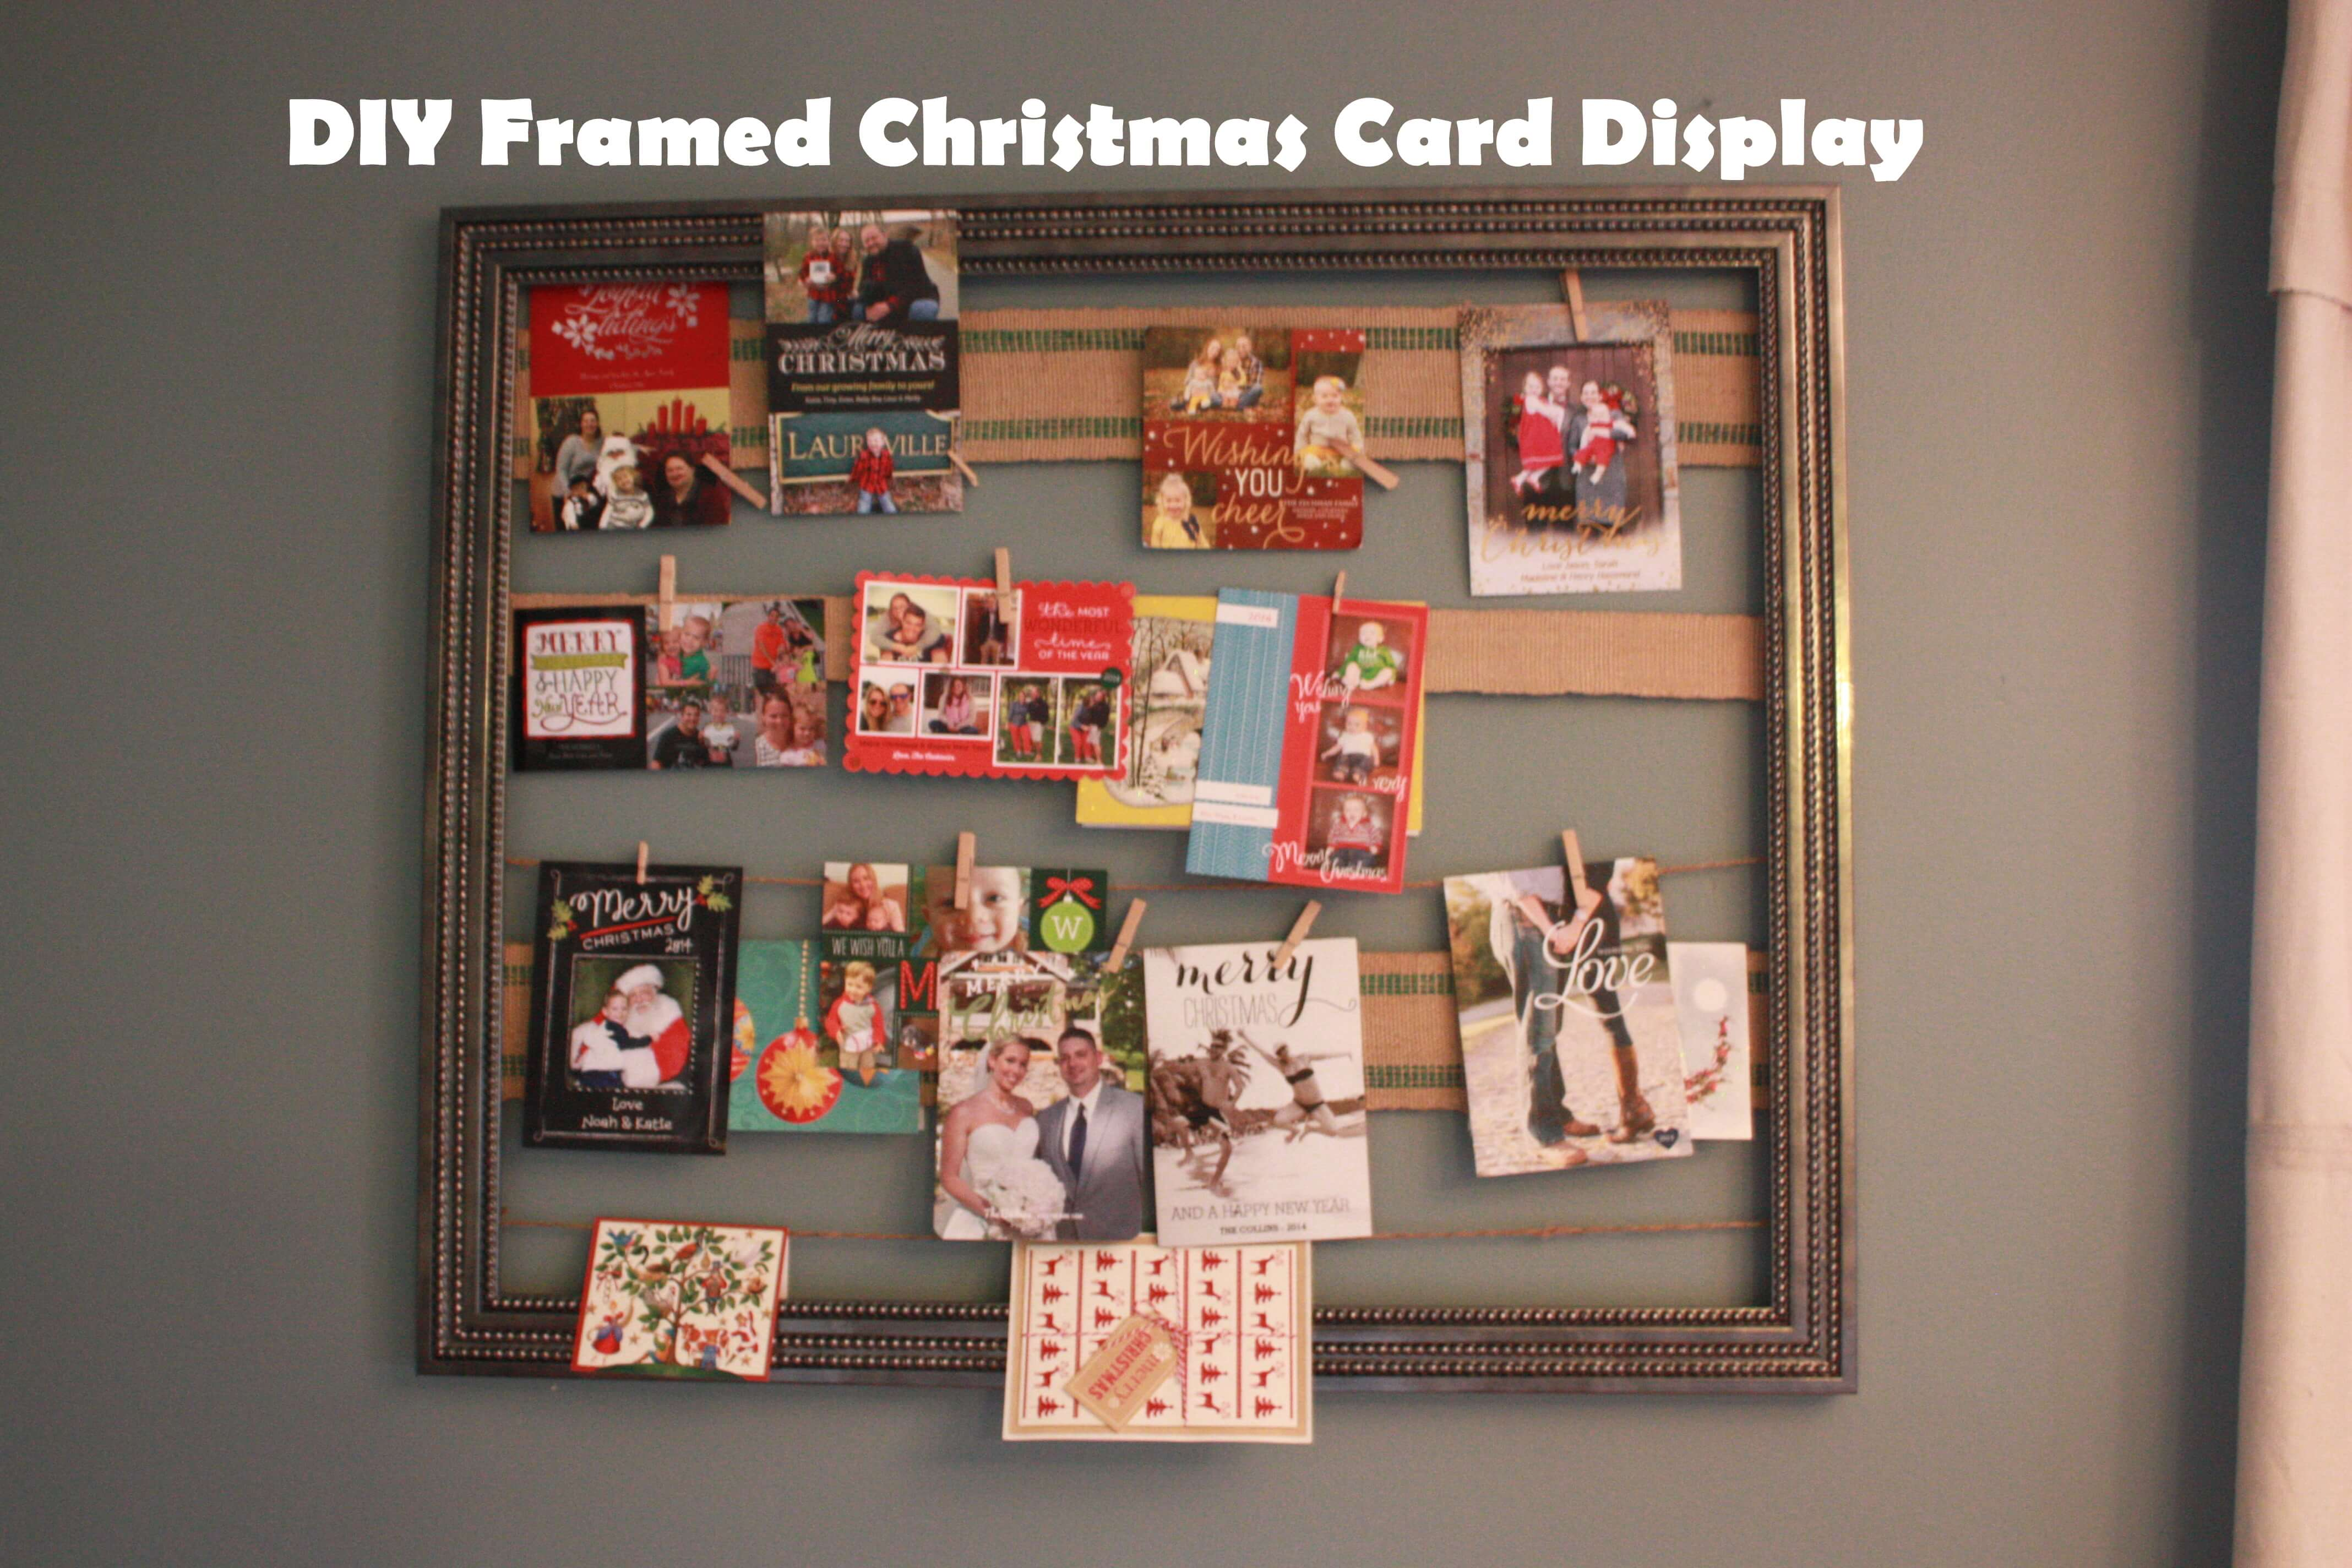 Frame those cards for added benefits